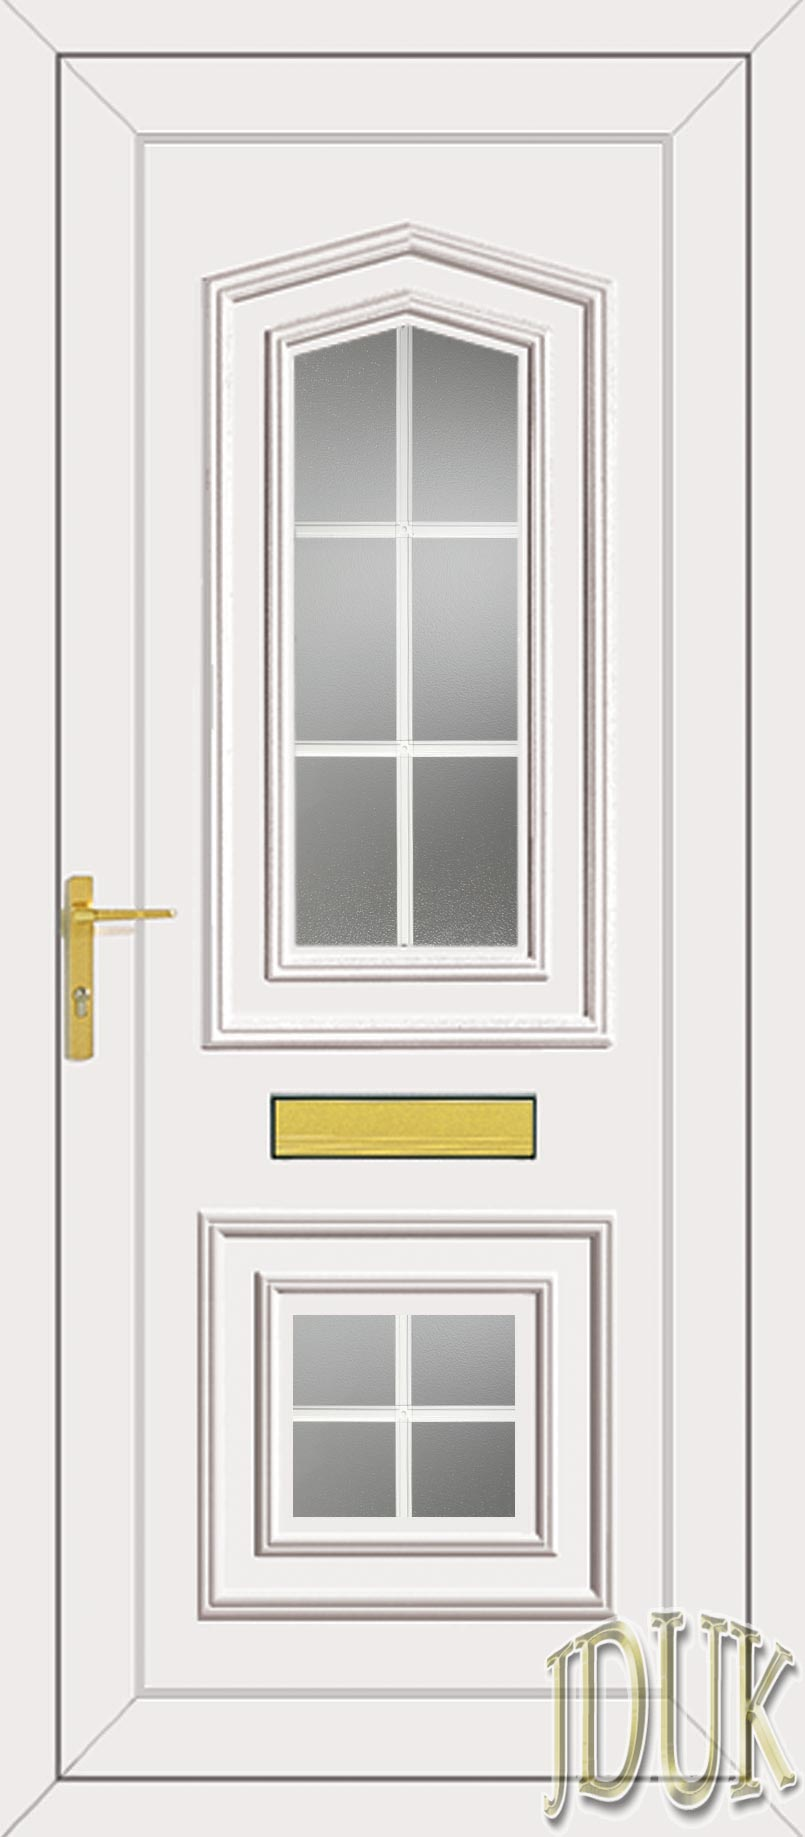 Upvc doors uk diy upvc doors standard size upvc doors for Upvc french doors with cat flap